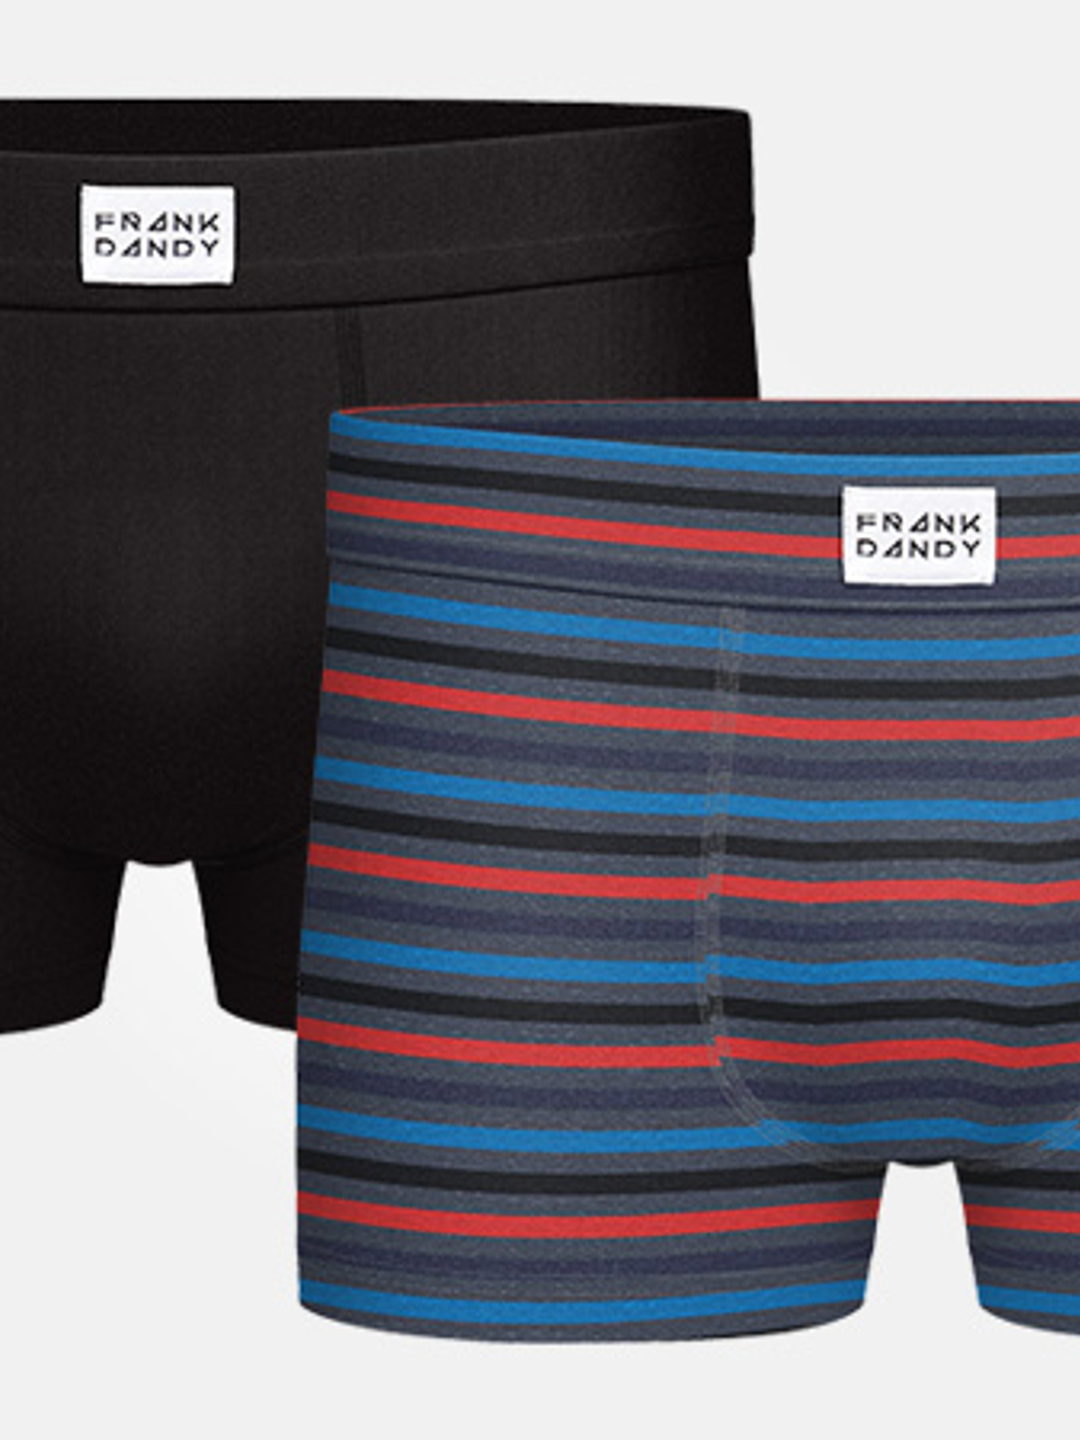 2P Bamboo Trunk - Black/Stripe Multi Grey